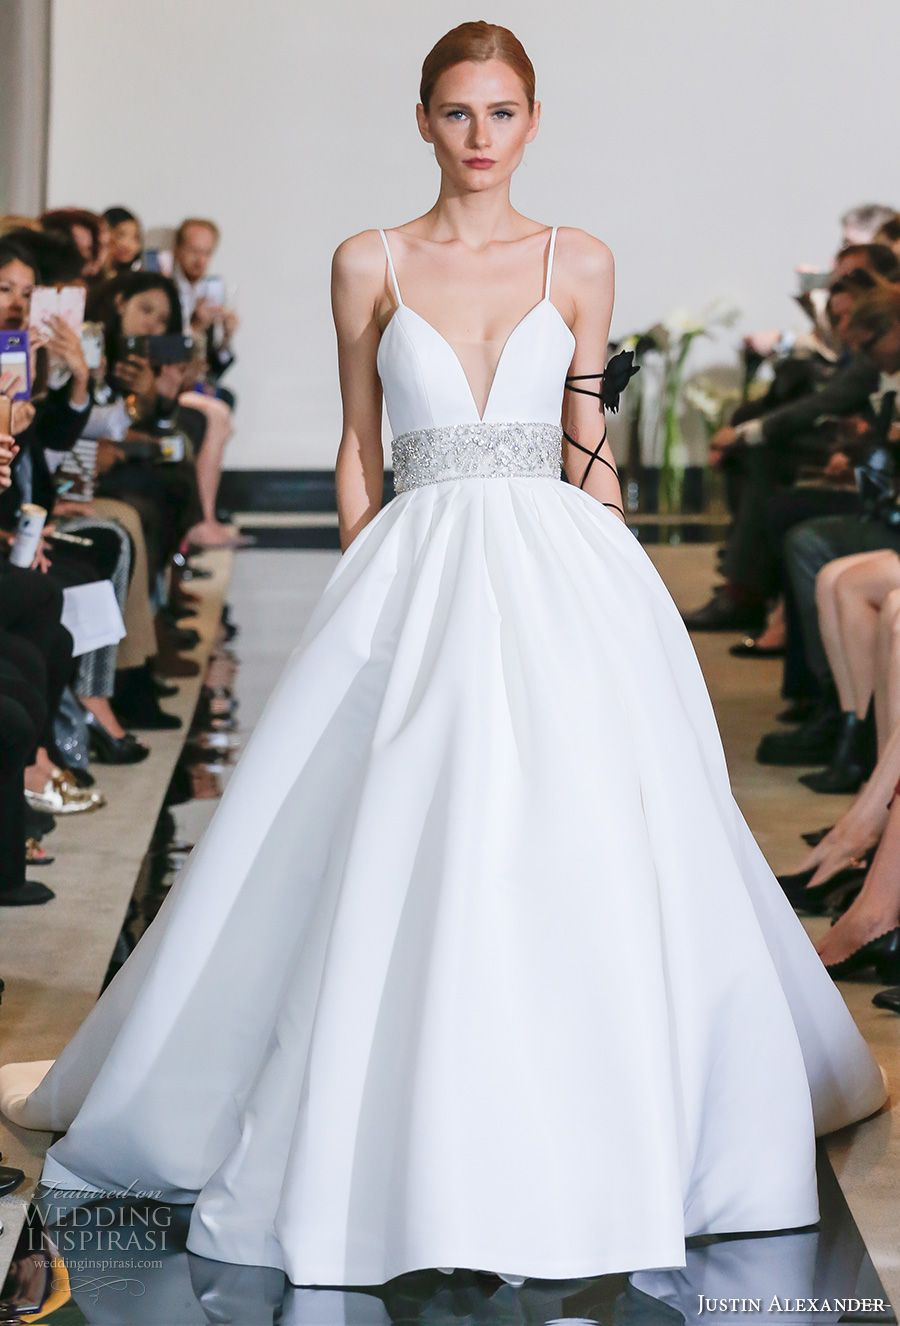 Justin Alexander Spring 2018 Bridal Spagetti Strap Deep Plunging Sweetheart Neckline Simple Clean Embellished Belt Ball Gown Wedding Dress Chapel Train 06